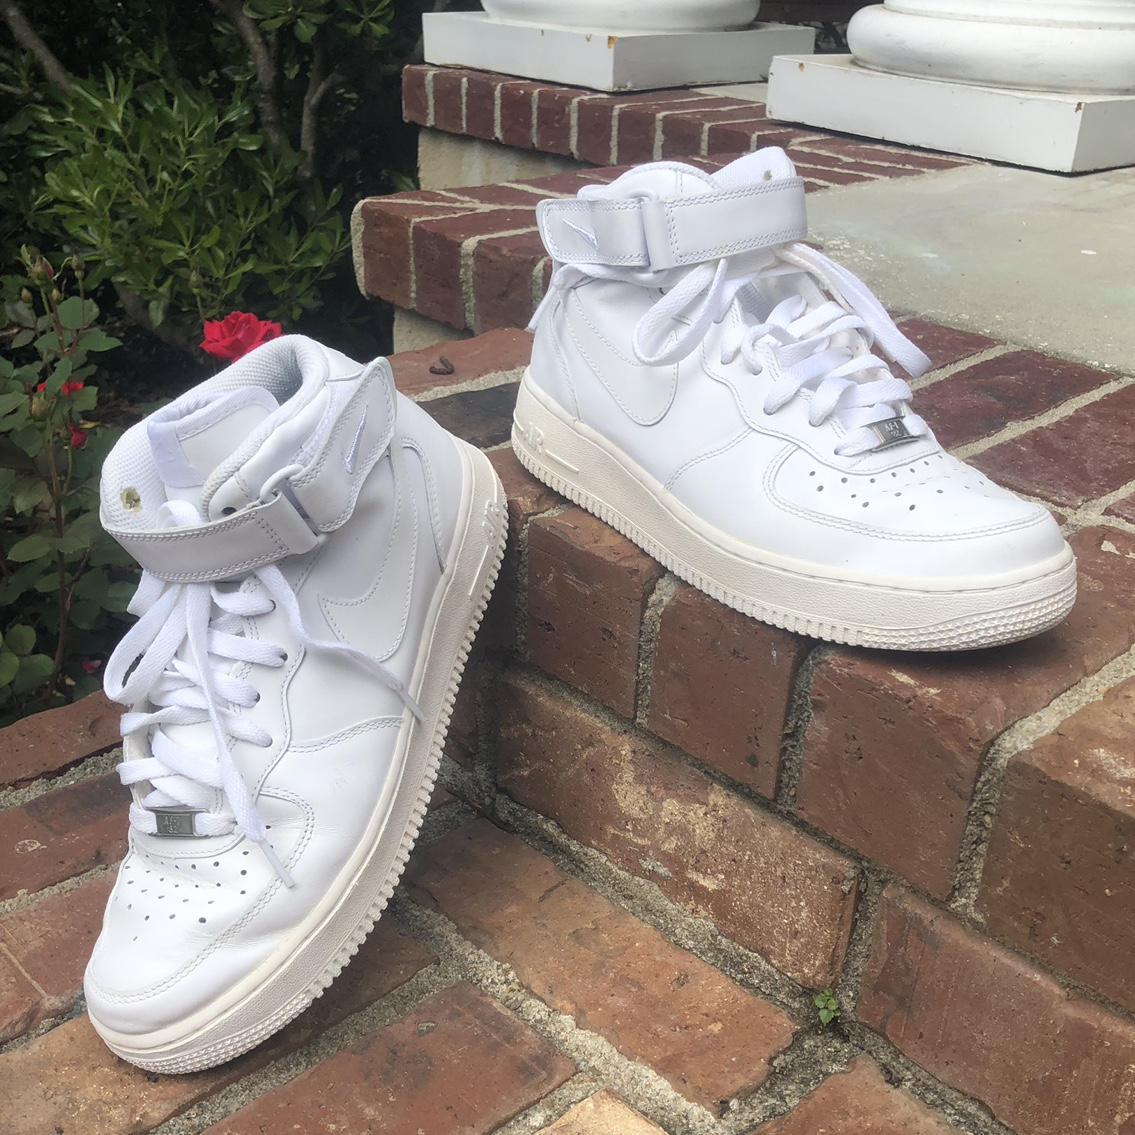 Nike Air Force 1 High Tops   Size 8 Men's / Size 10... - Depop